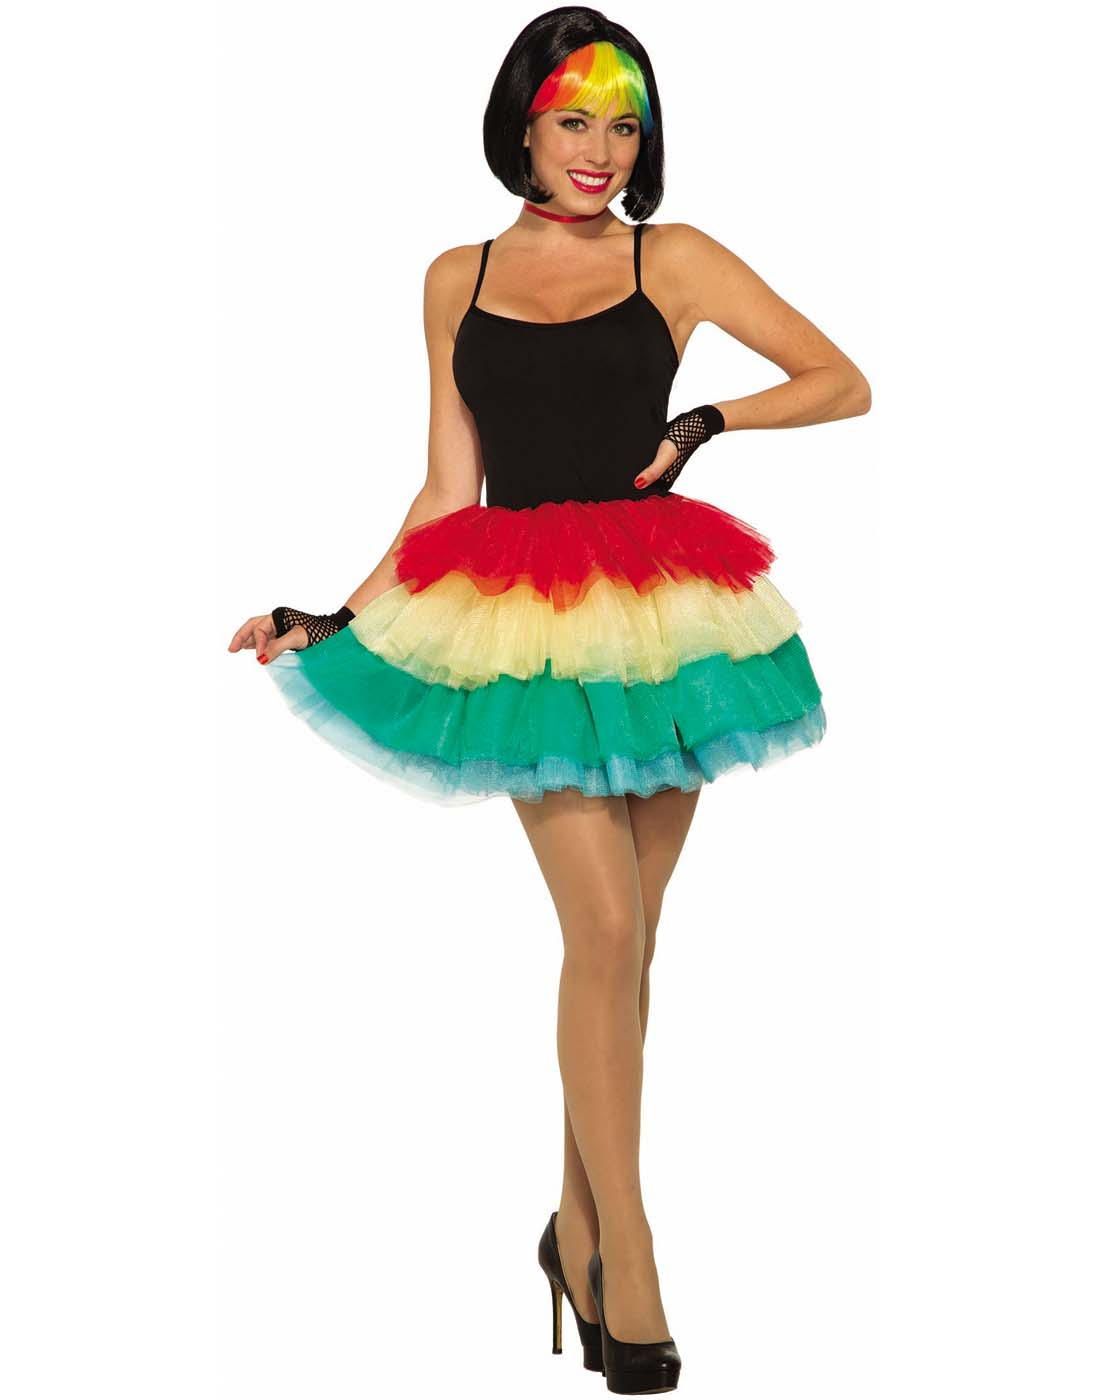 Gay Pride Halloween Costume.Details About Rainbow Womens Adult Gay Pride Halloween Costume Accessory Tutu